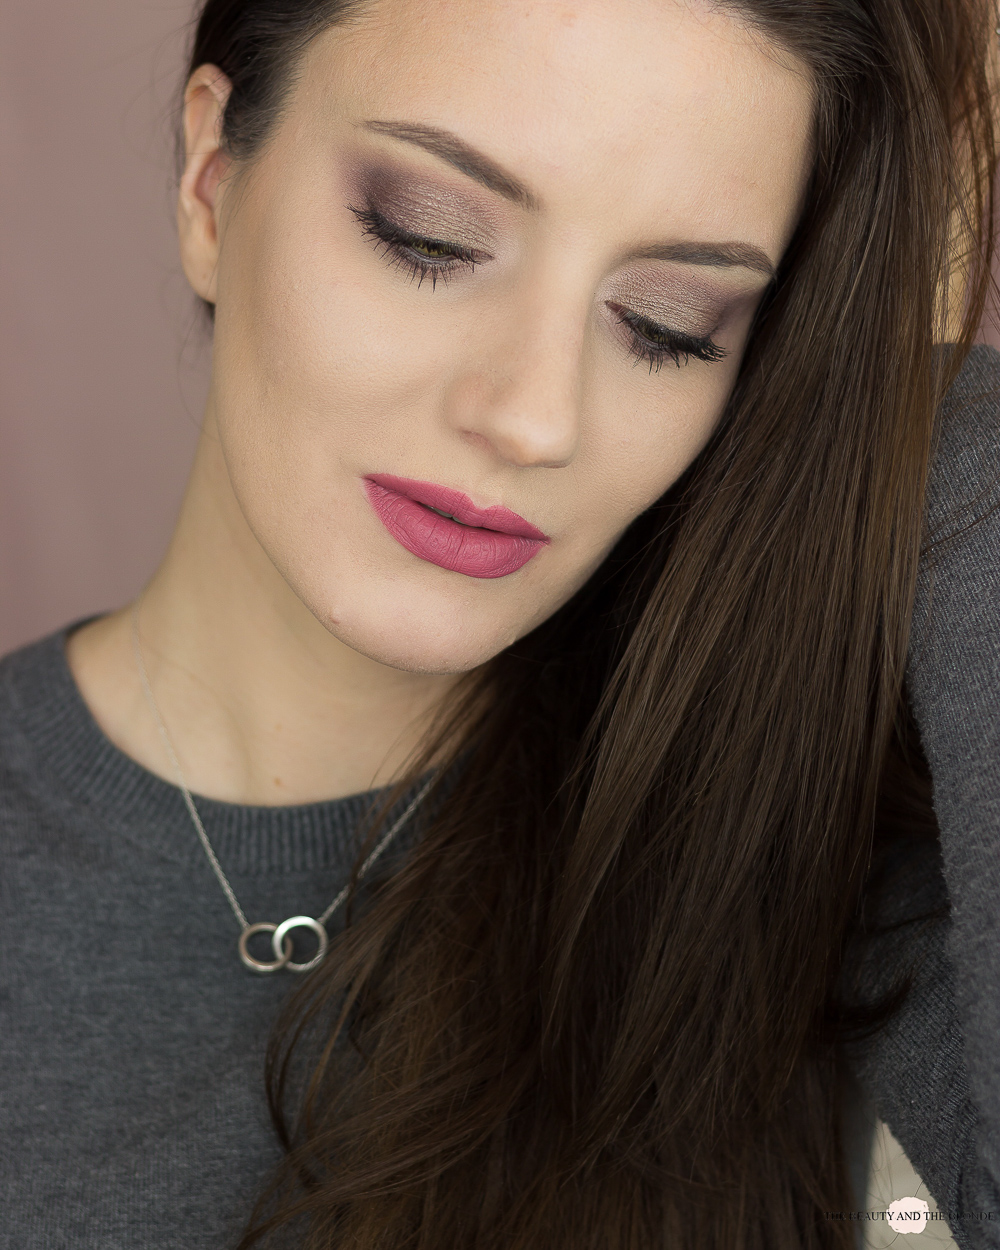 Catrice Superbia Vol. 2 Frosted Taupe Eyeshadow Palette Look Review Swatches